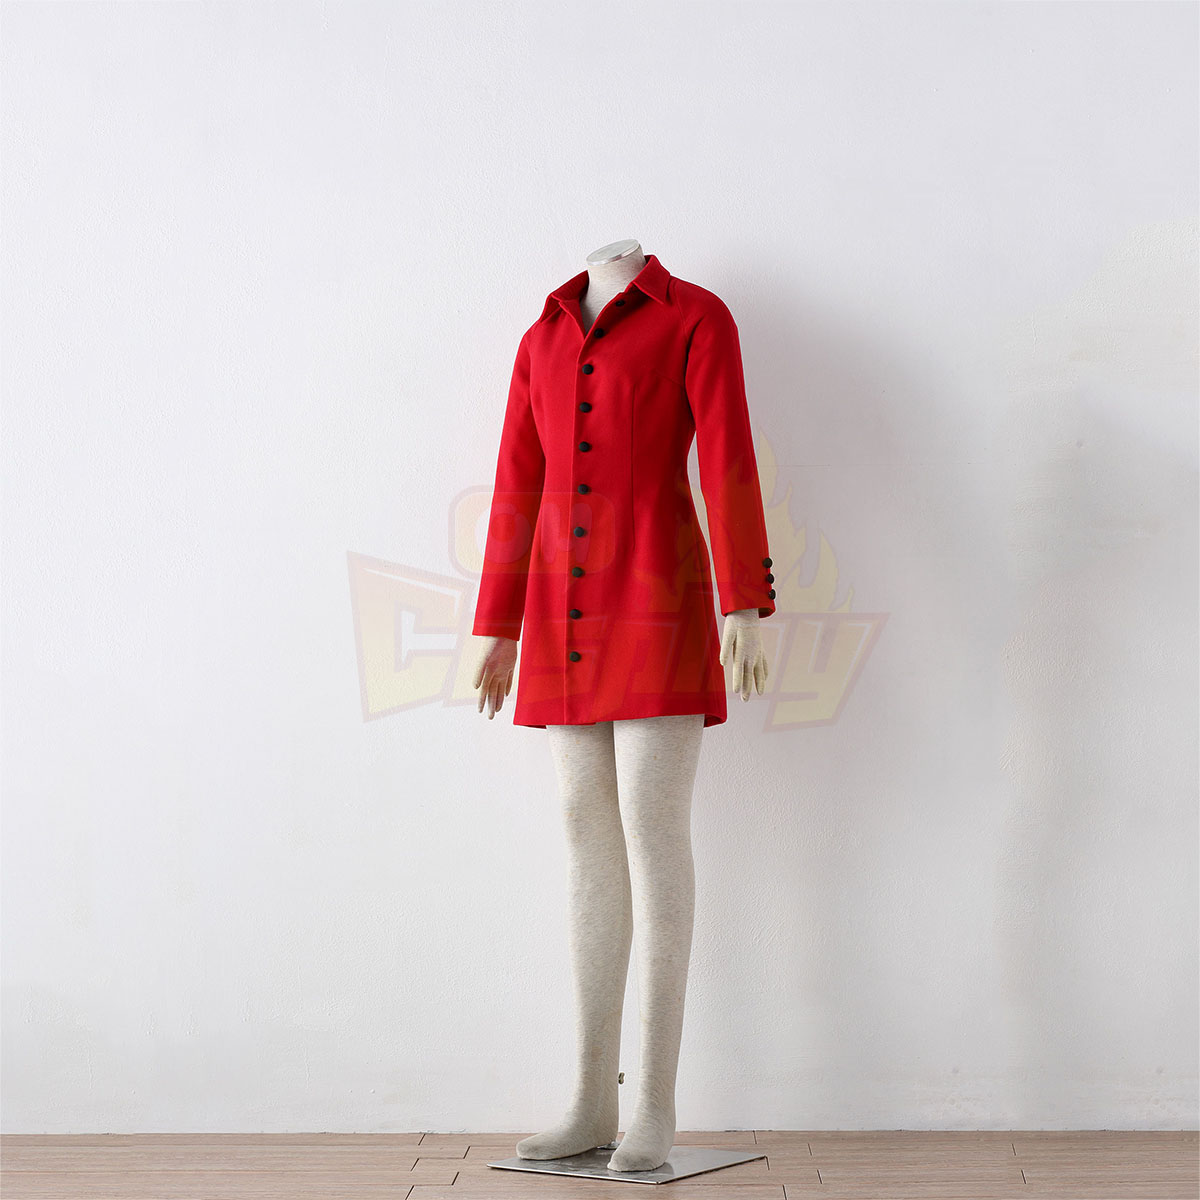 Fate Stay Night Tohsaka Rin 4TH Red Cosplay Costumes Deluxe Edition